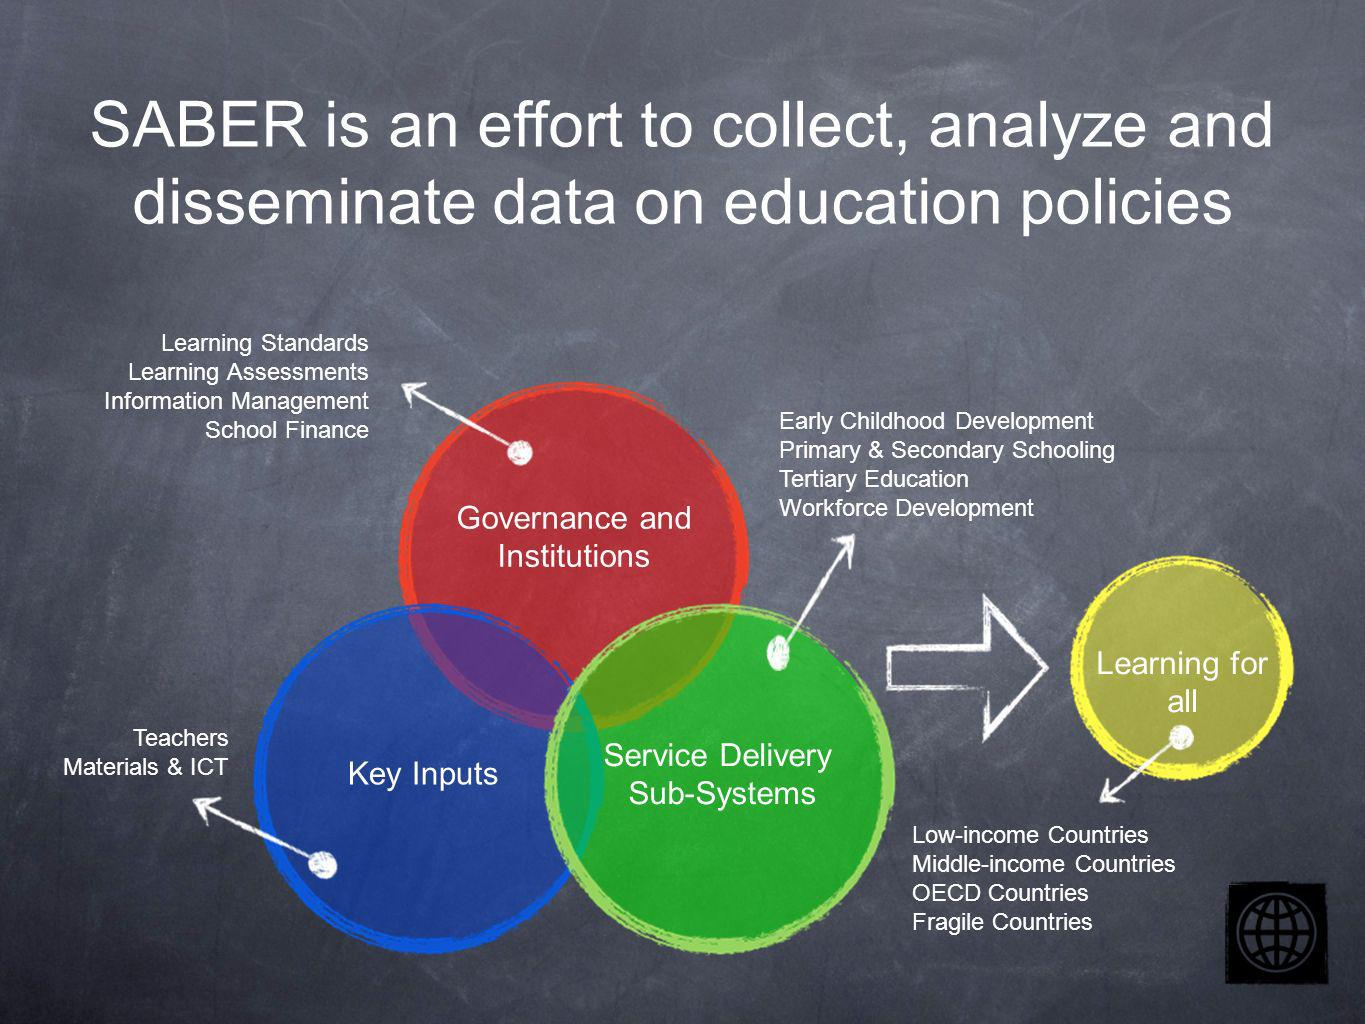 SABER is an effort to collect, analyze and disseminate data on education policies Governance and Institutions Key Inputs Service Delivery Sub-Systems Learning Standards Learning Assessments Information Management School Finance Early Childhood Development Primary & Secondary Schooling Tertiary Education Workforce Development Teachers Materials & ICT Learning for all Low-income Countries Middle-income Countries OECD Countries Fragile Countries